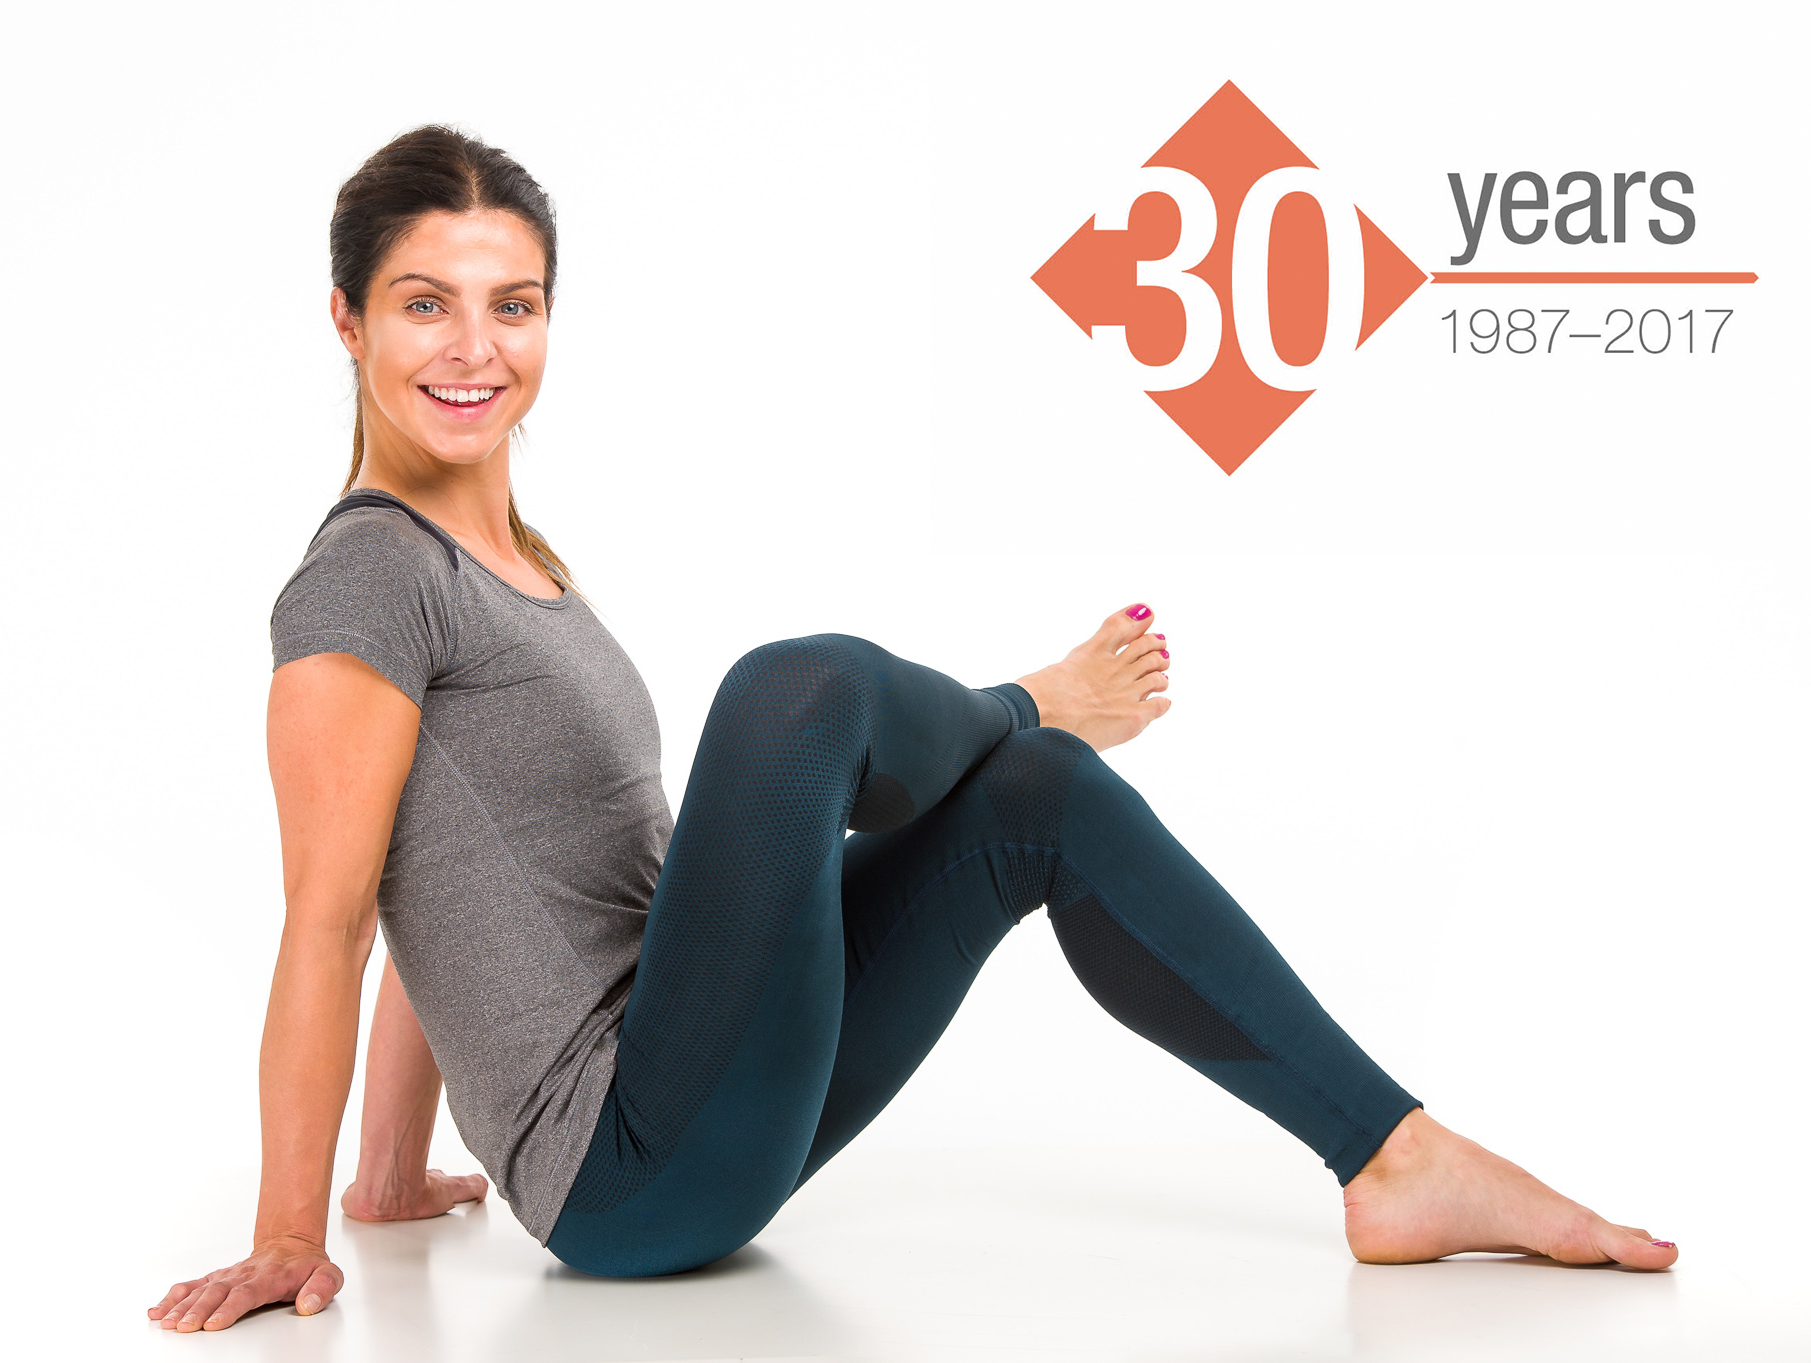 Celebrating 30 years of PhysioTools - the exercise software that has developed with our profession